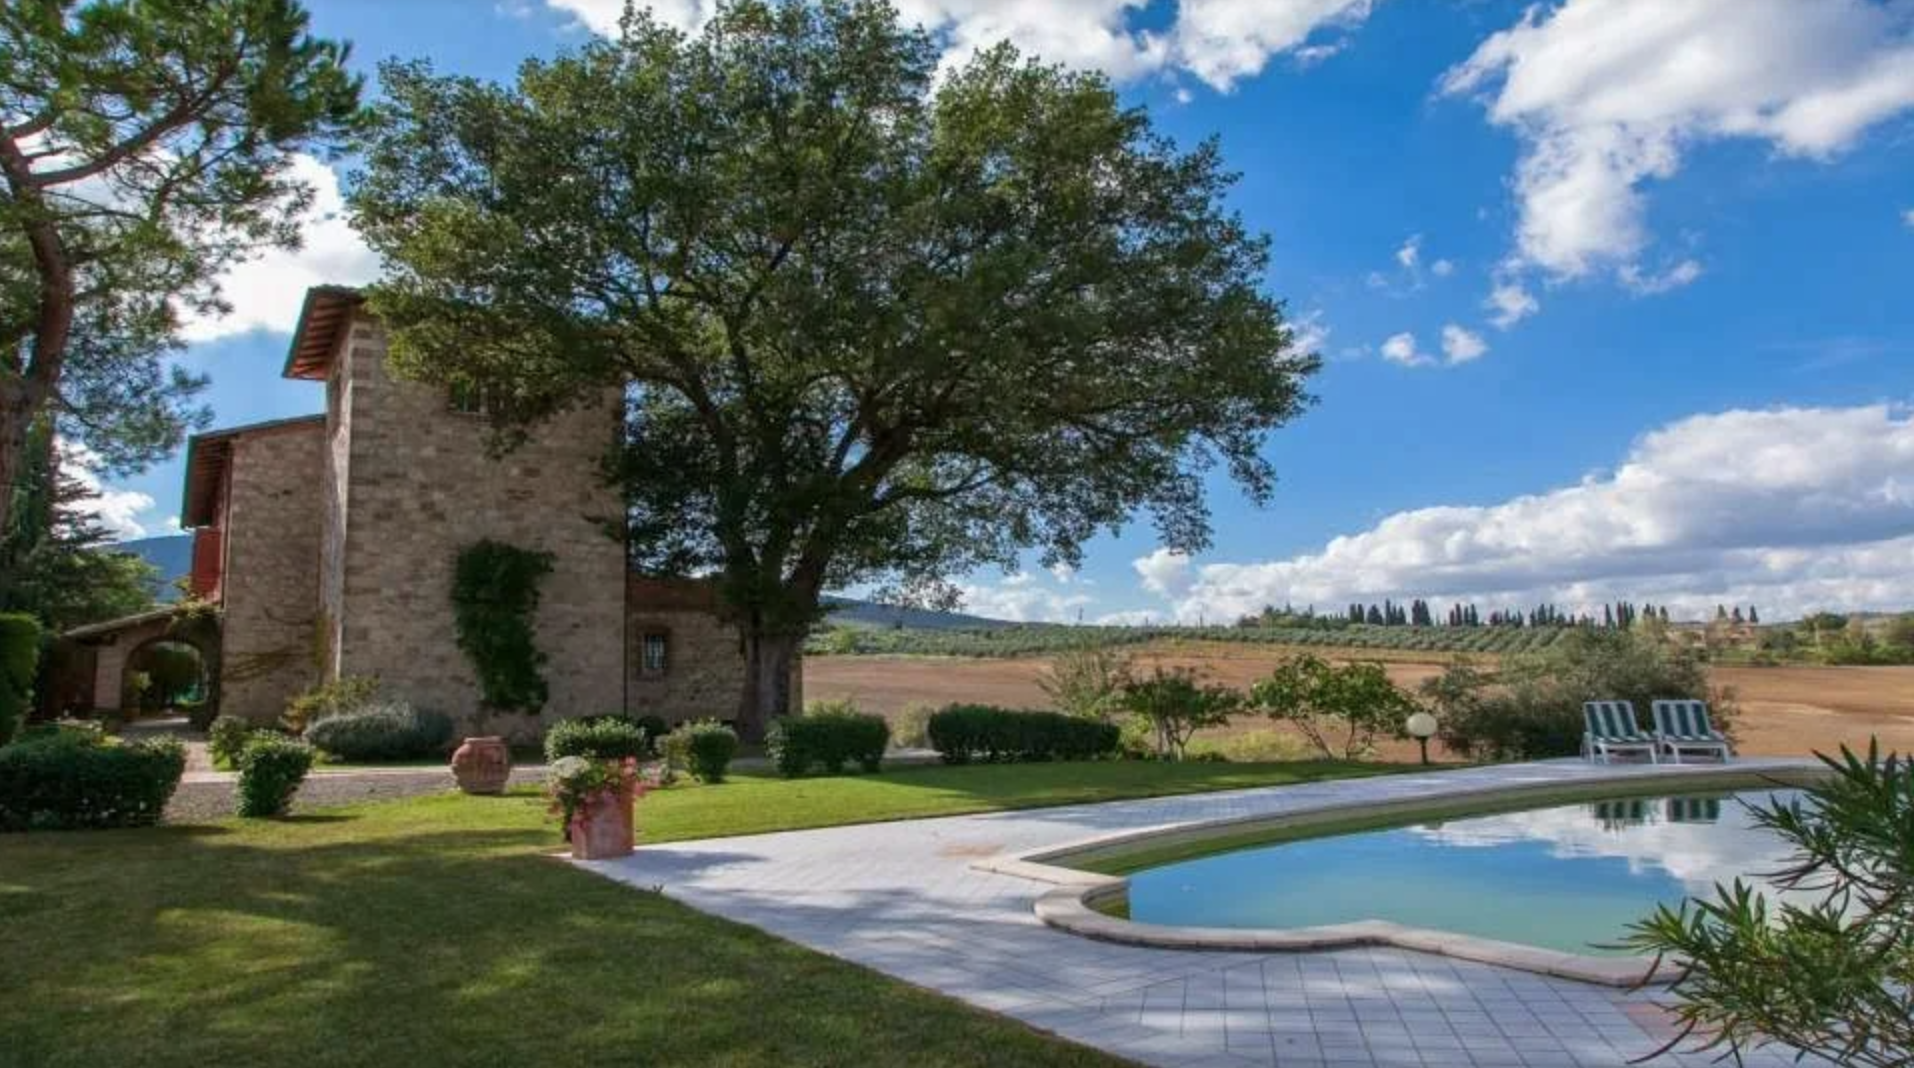 18th Century Tuscany Property - PFI International Ltd